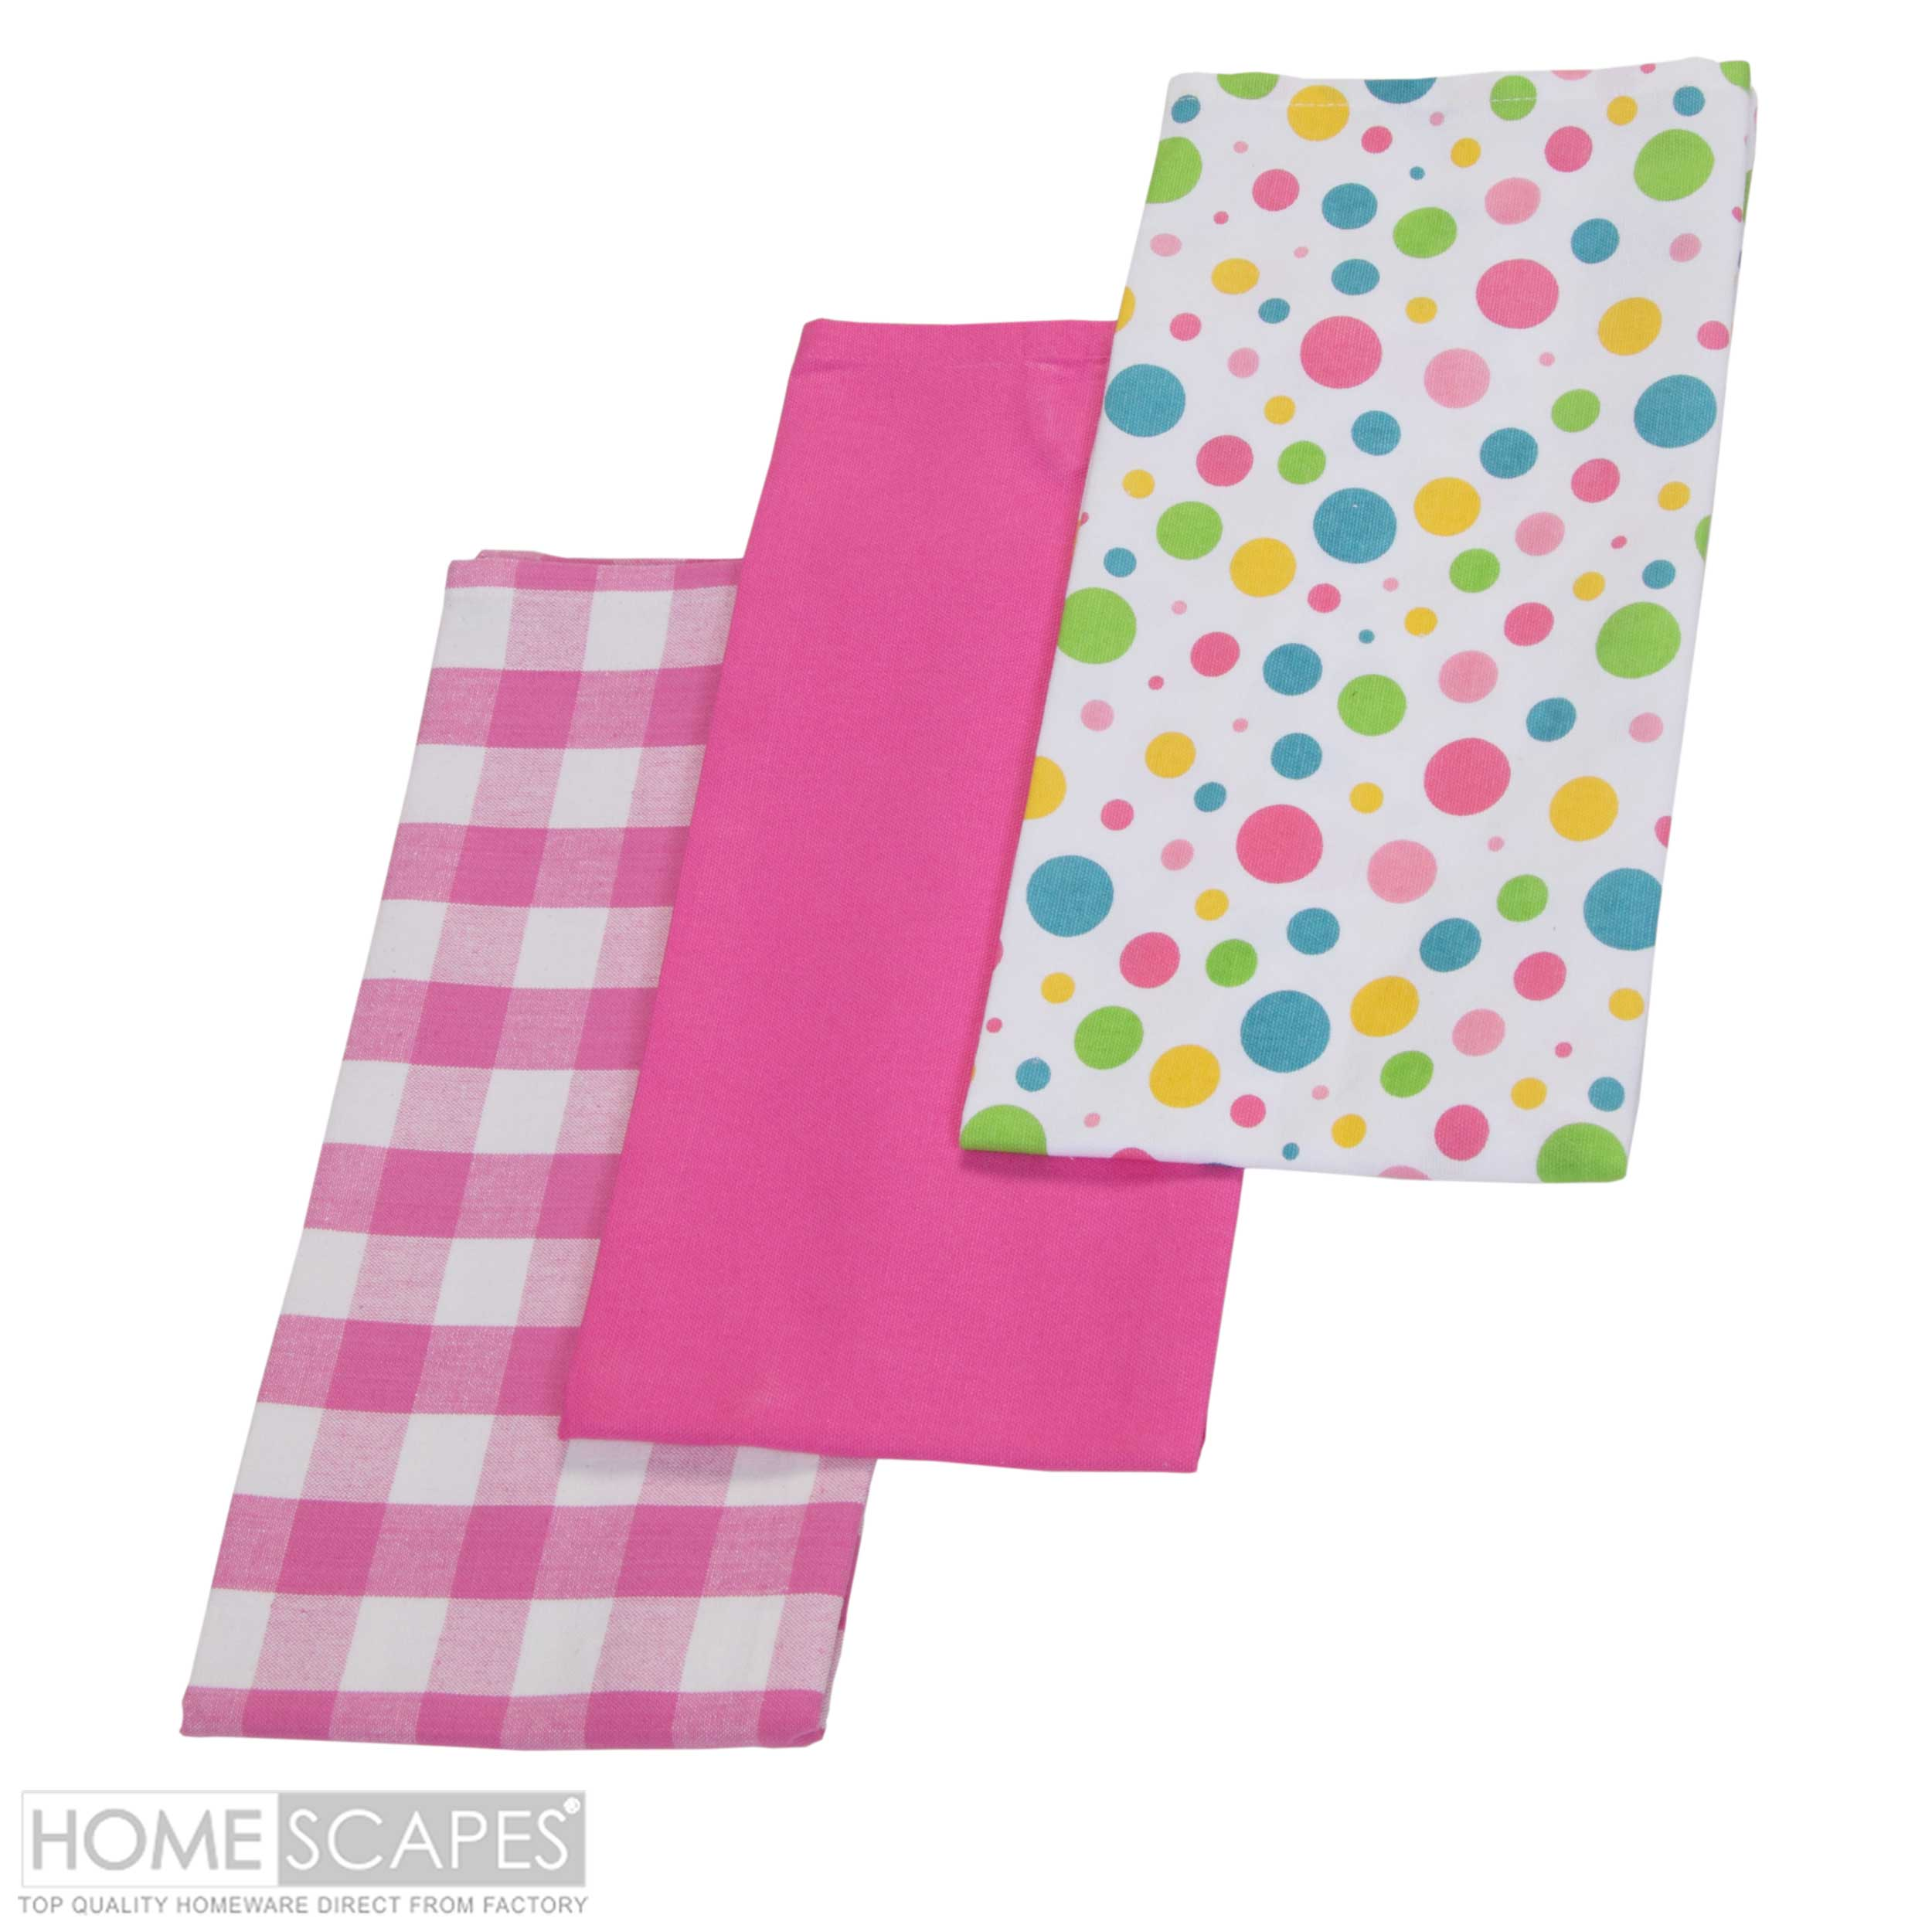 10 Photos To Kitchen Towel Sets